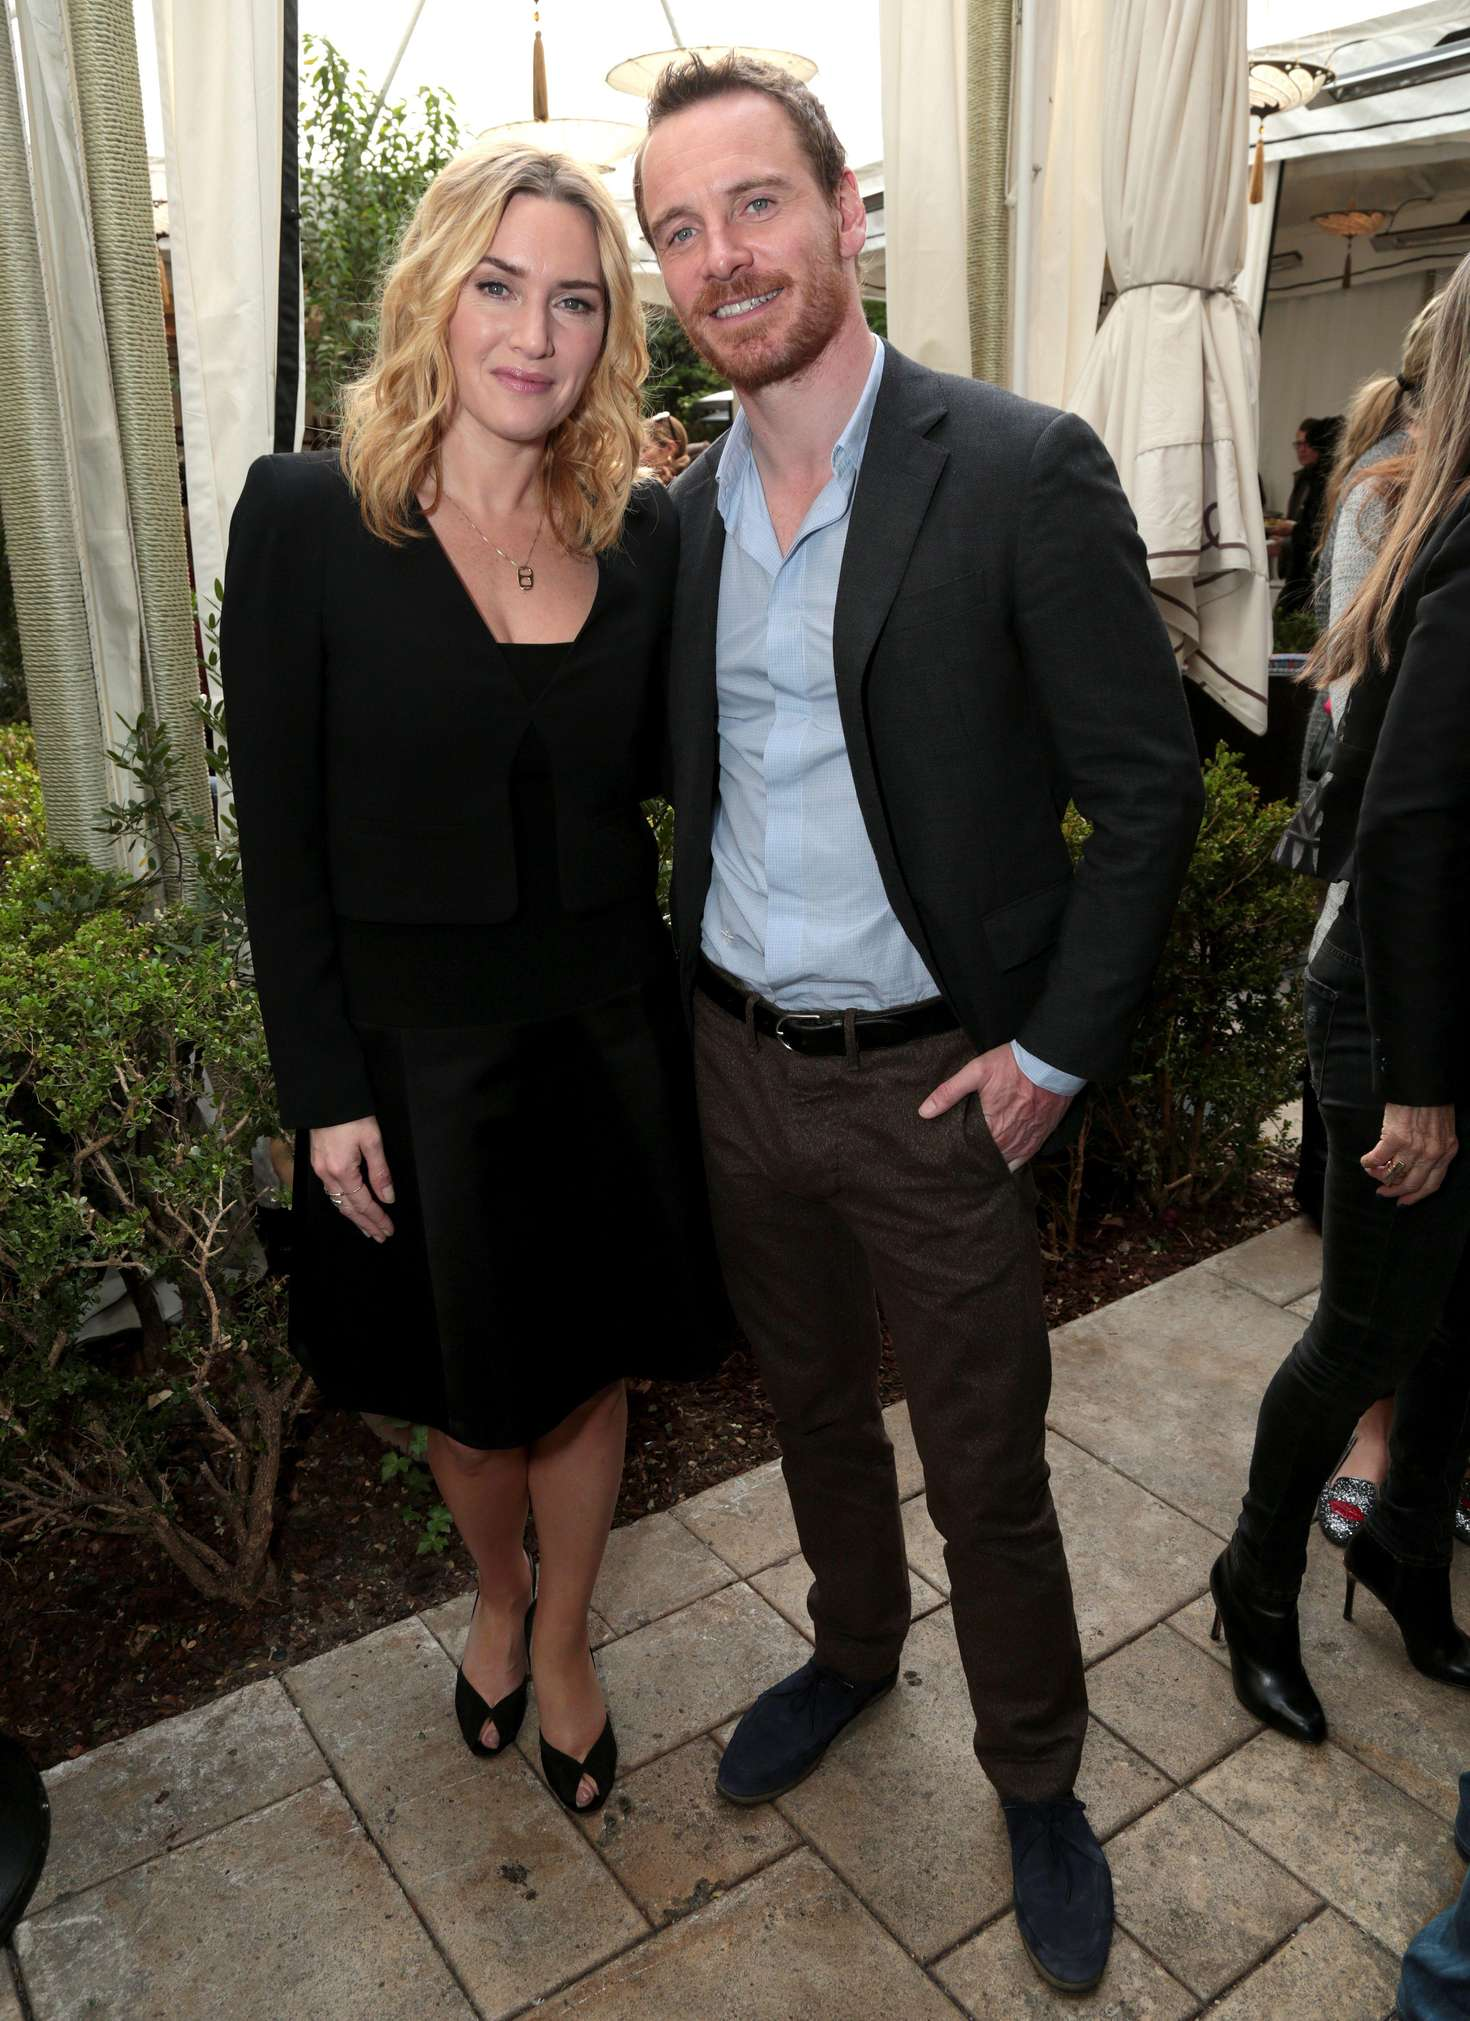 Kate Winslet Steve Jobs Film Brunch at the Chateau Marmont in Hollywood